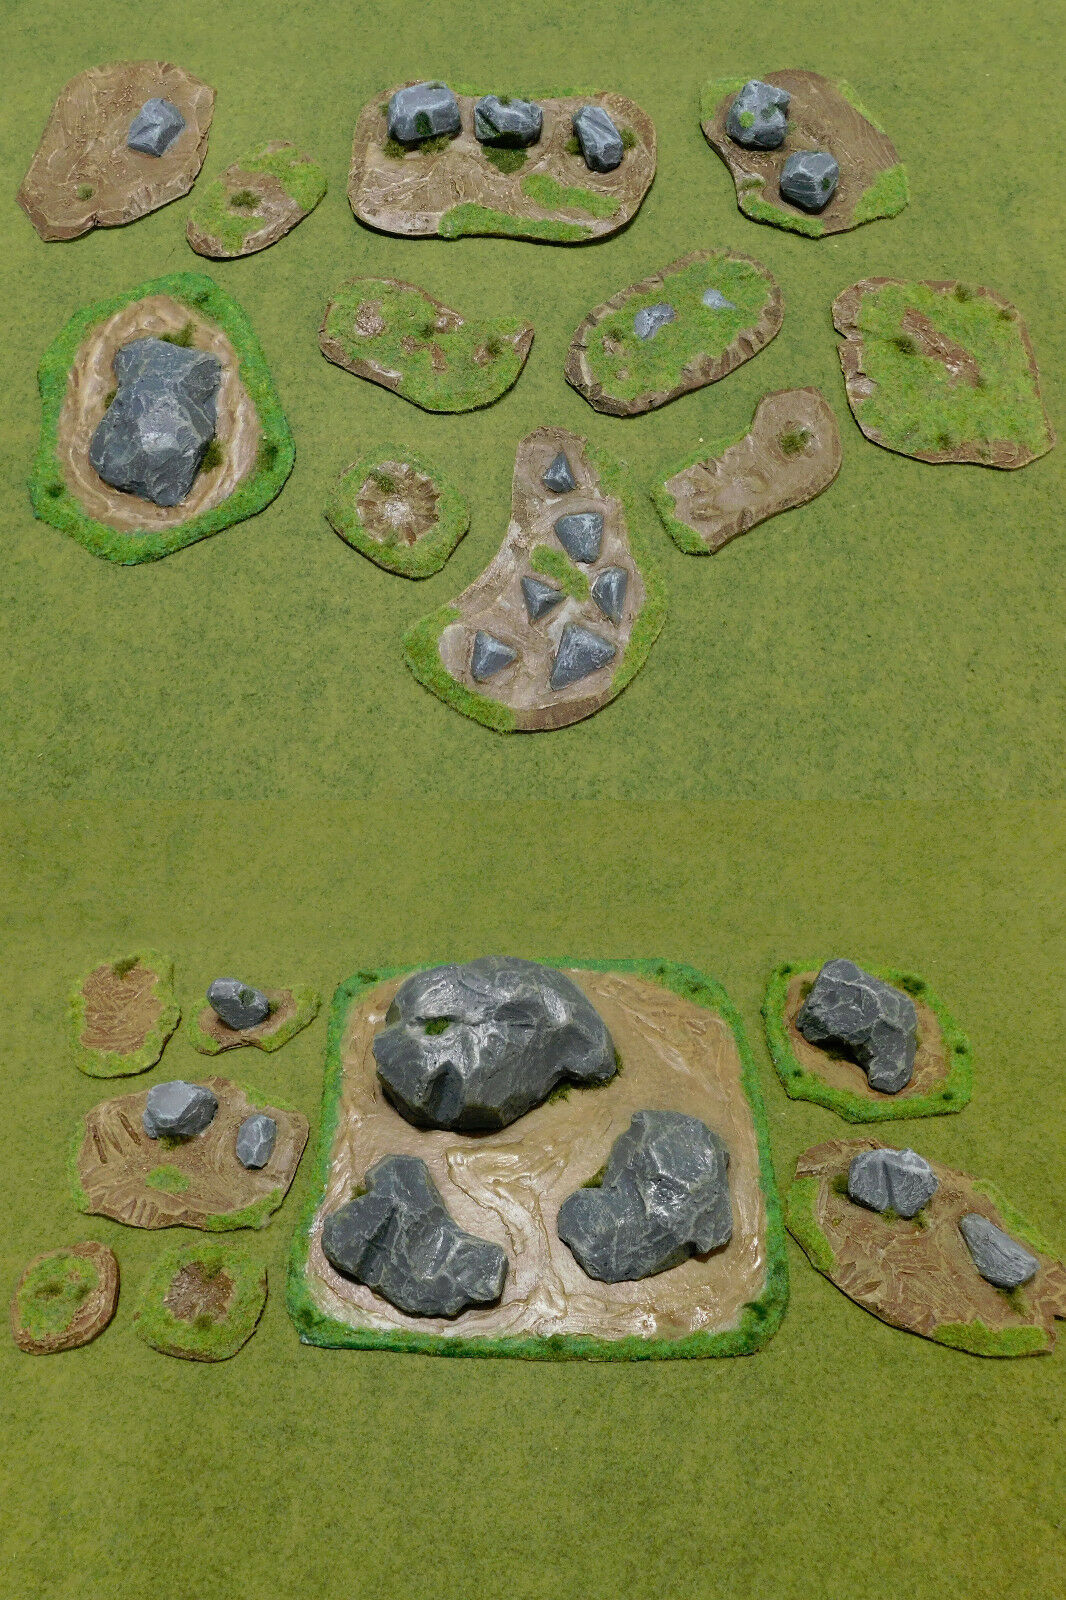 WAGAMING RPG TERRAIN Super Set - Mud and Boulders. Hand crafted